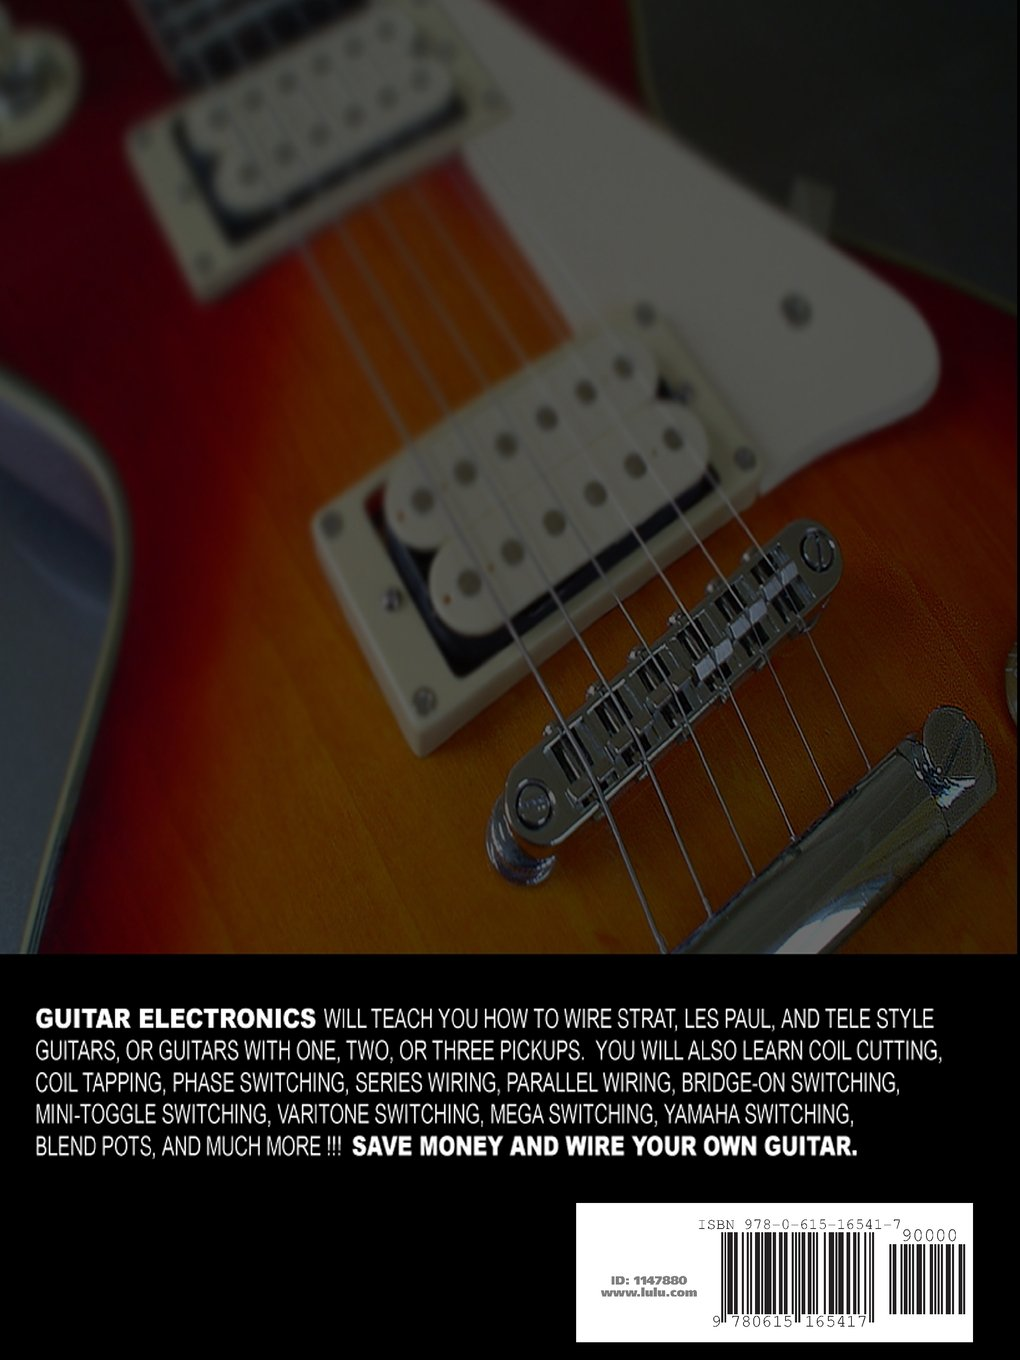 Guitar Electronics Understanding Wiring And Diagrams Learn Step By Way Switch On Telecaster 3 Toggle Diagram How To Completely Wire Your Electric T A Swike 9780615165417